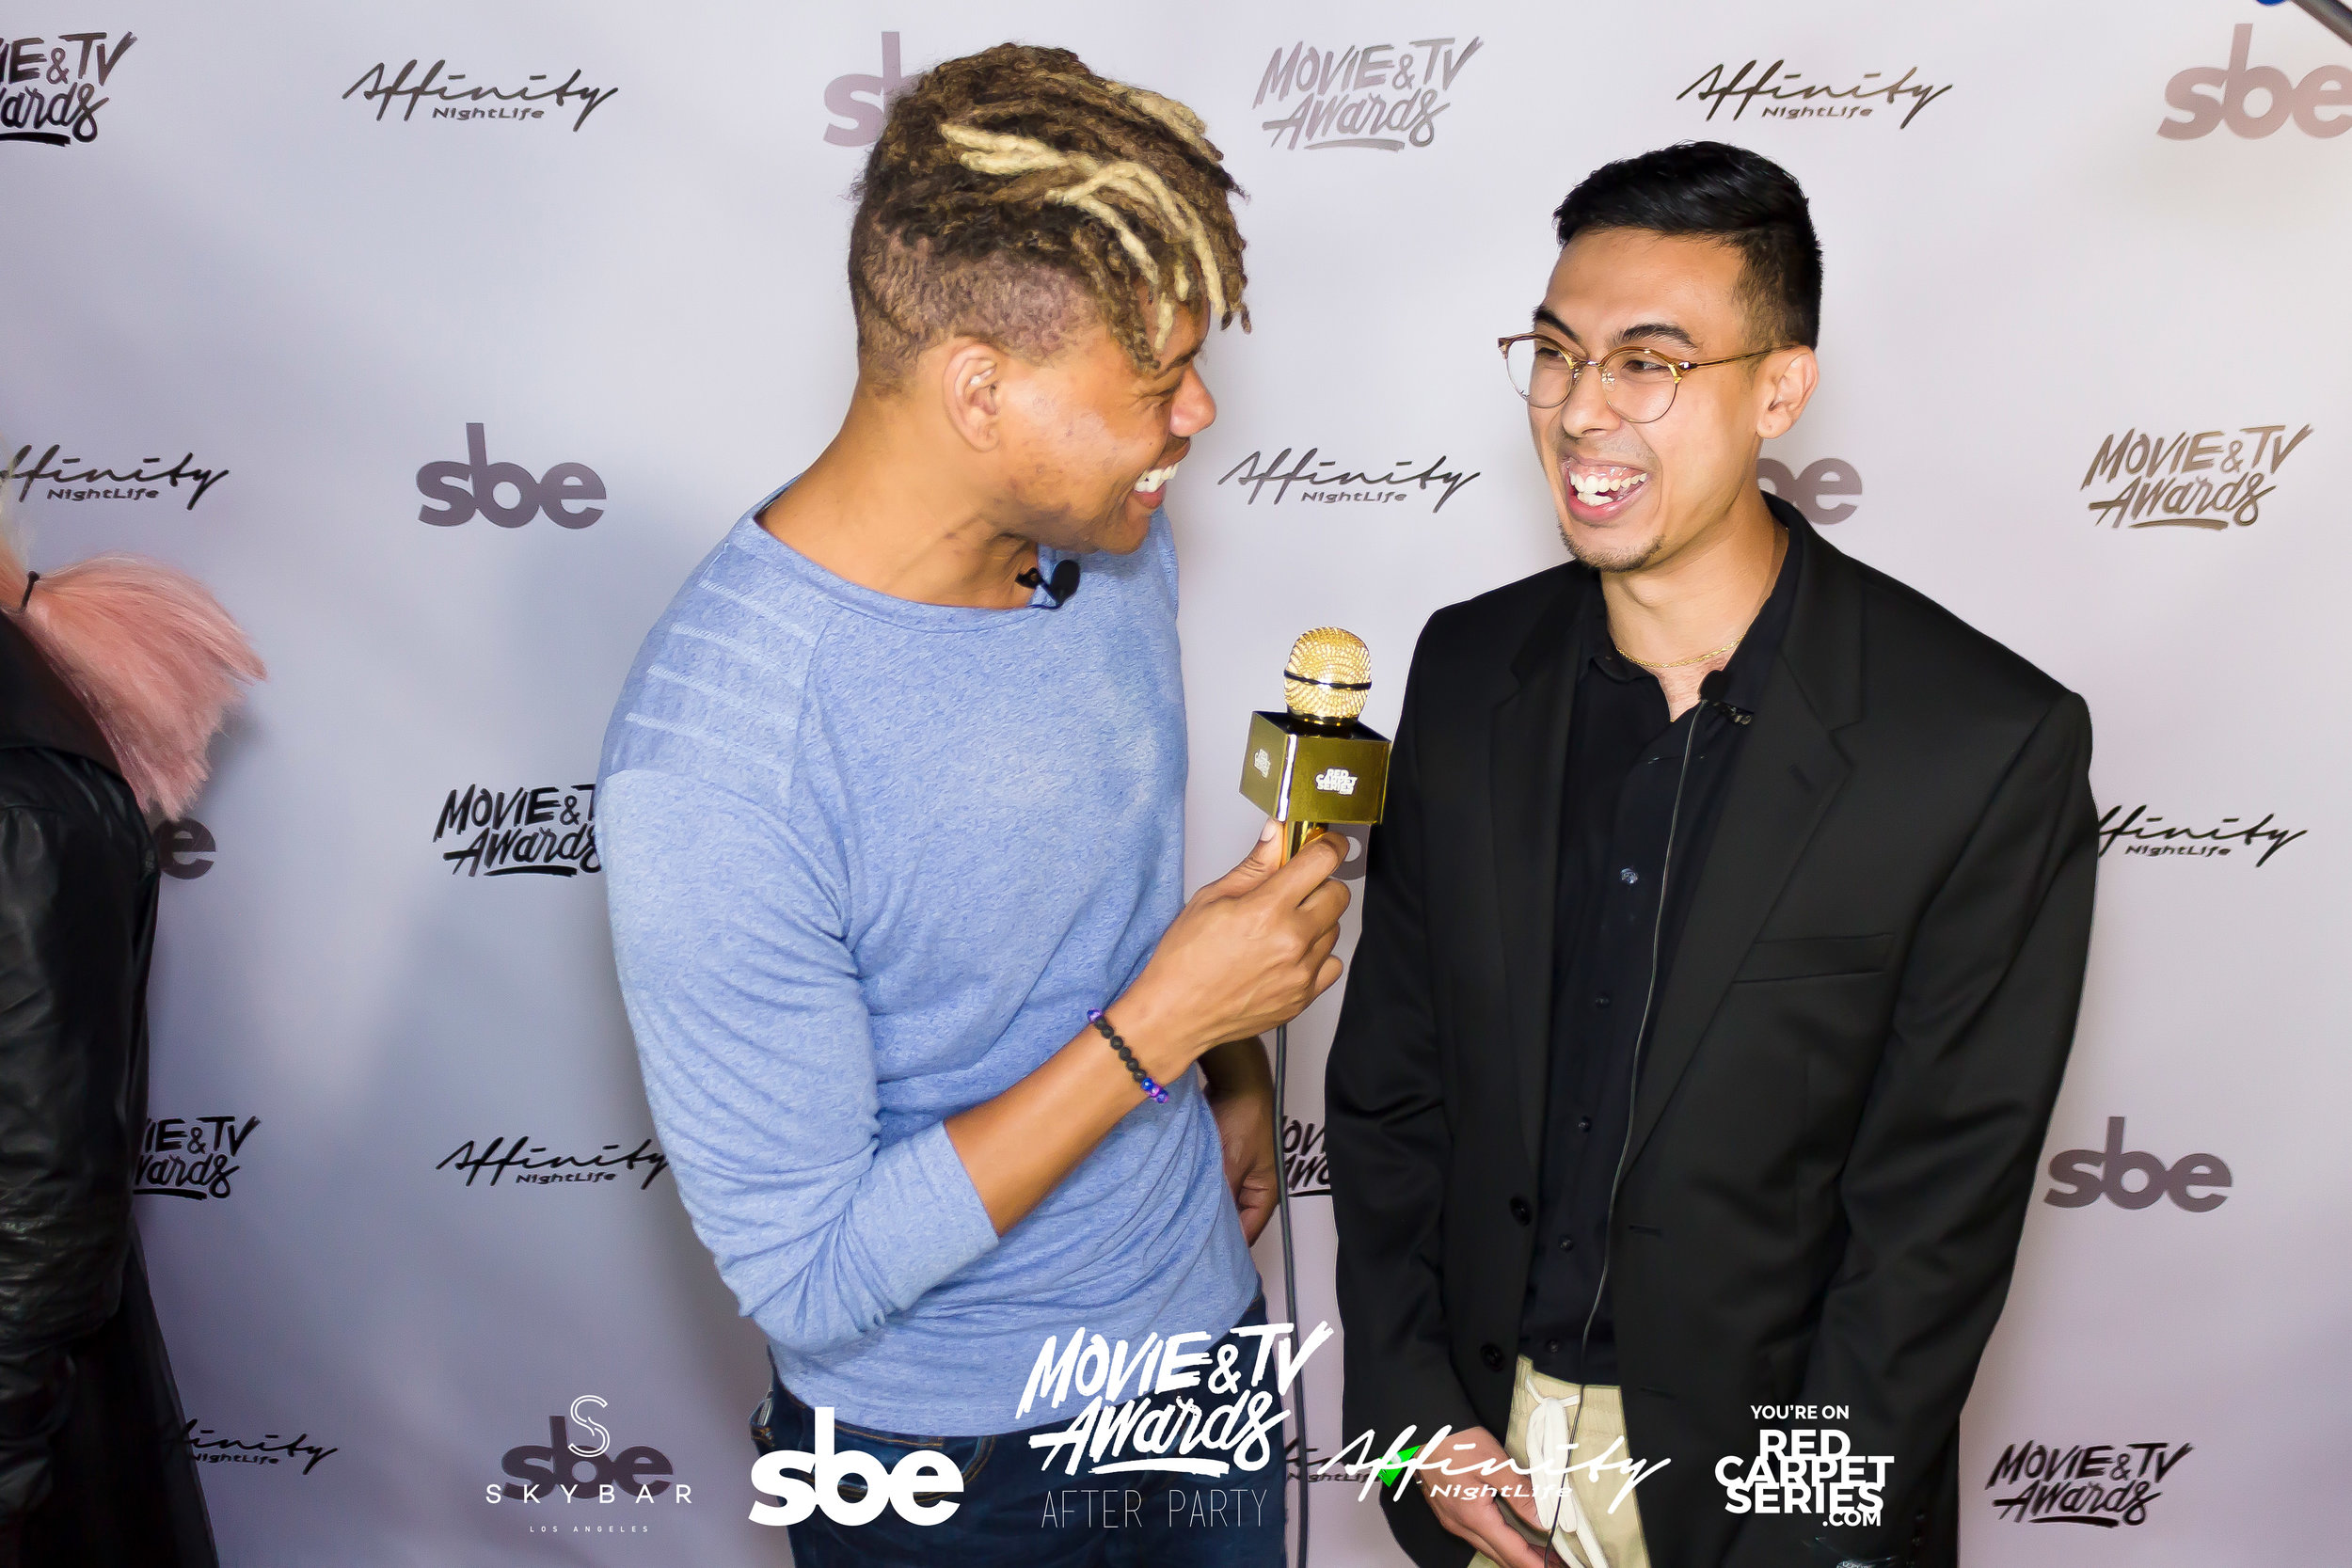 Affinity Nightlife MTV Movie & TV Awards After Party - Skybar at Mondrian - 06-15-19 - Vol. 1_77.jpg